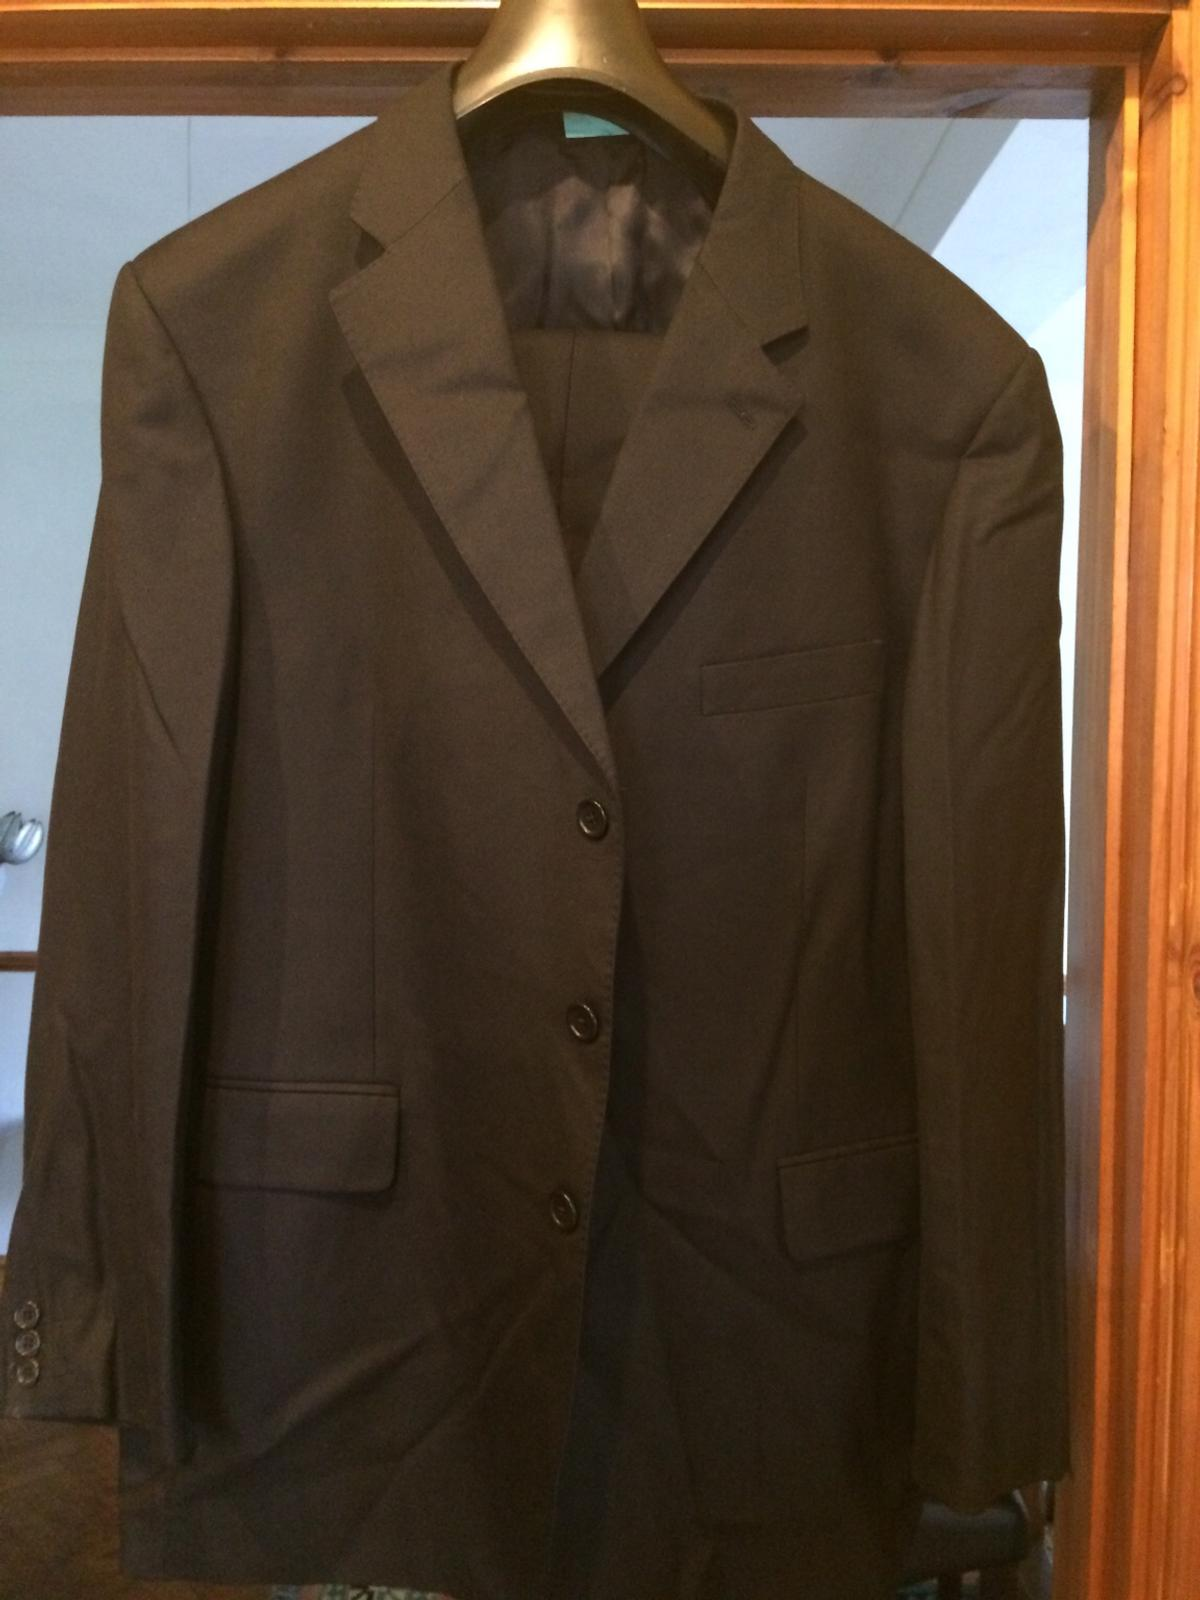 High End Gentleman Suit Selection In Cf Cardiff For 15 00 For Sale Shpock